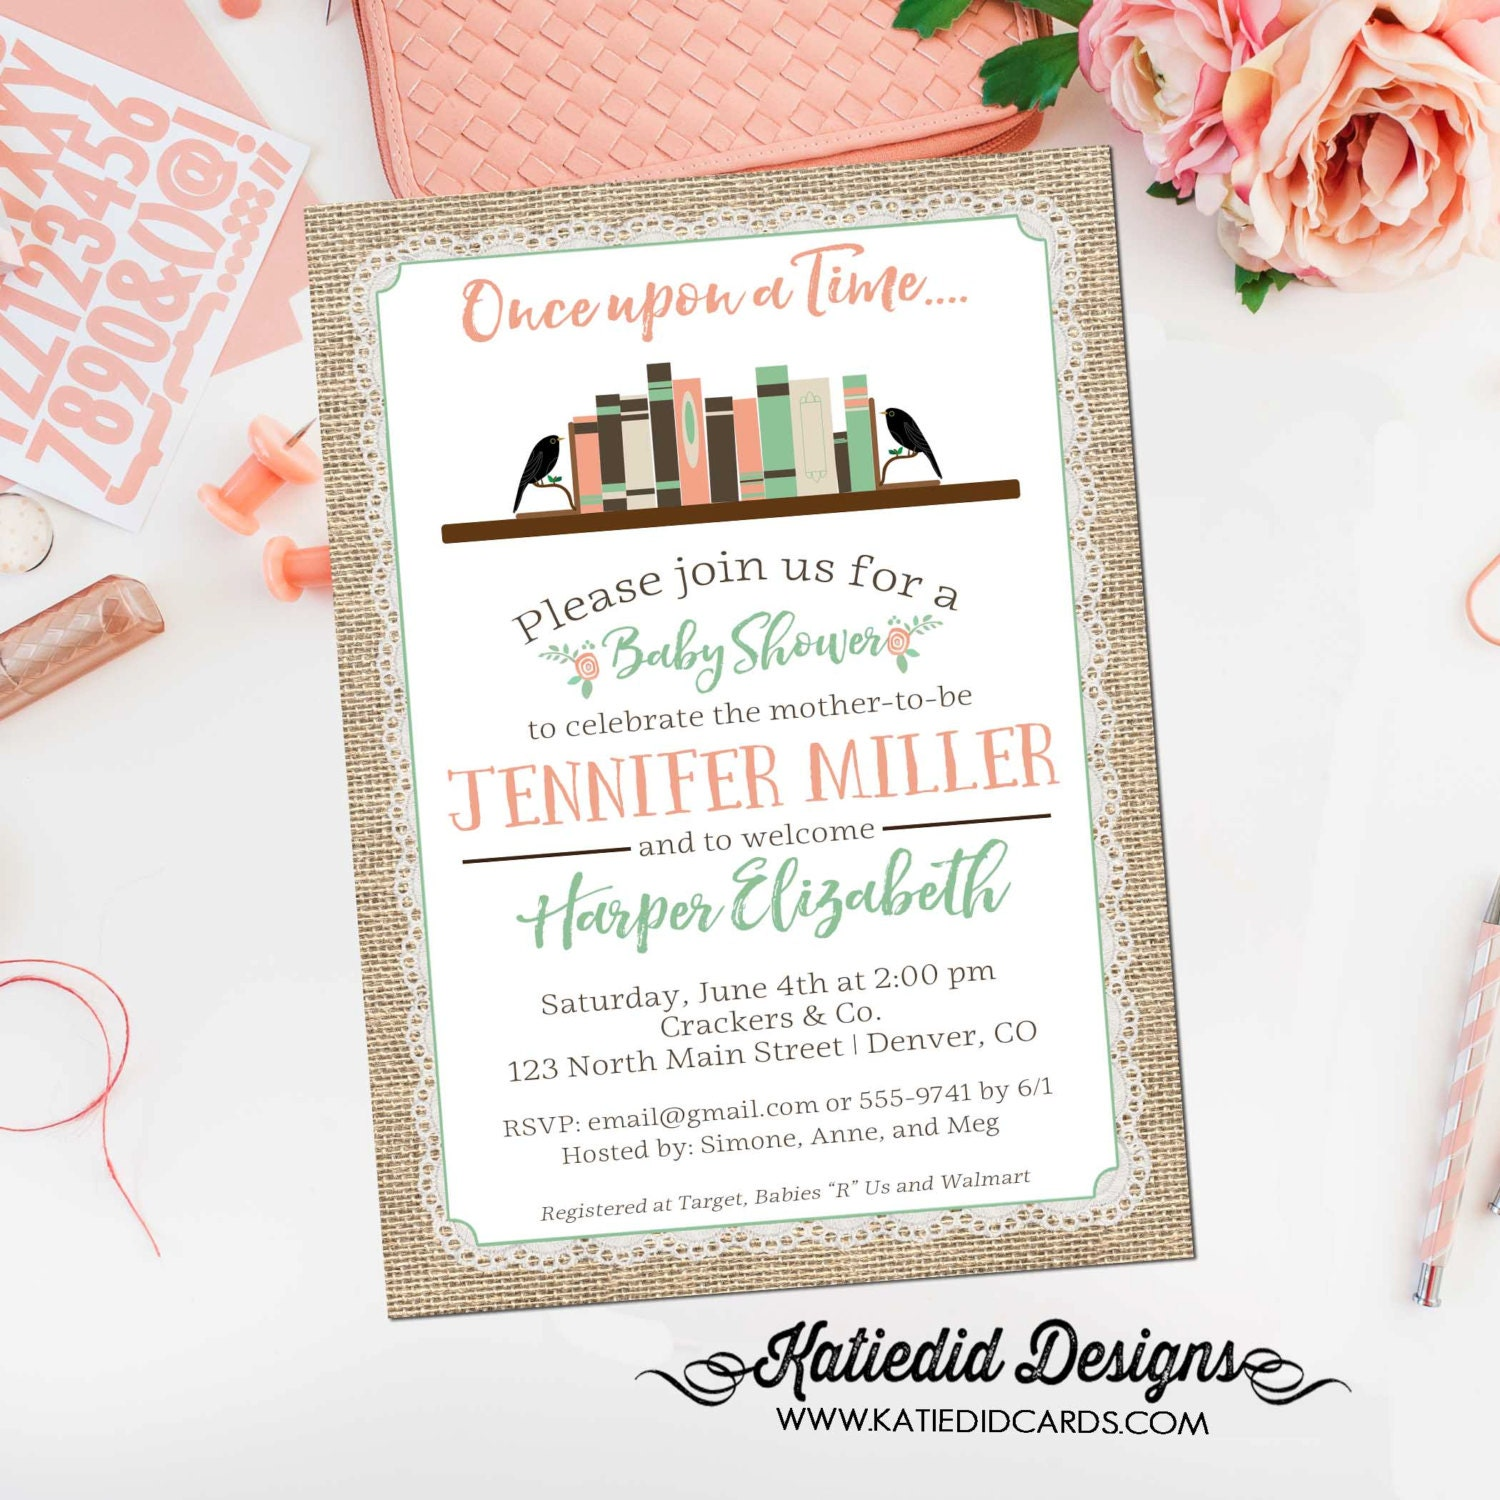 Once upon a time baby shower invitation storybook burlap lace mint ...